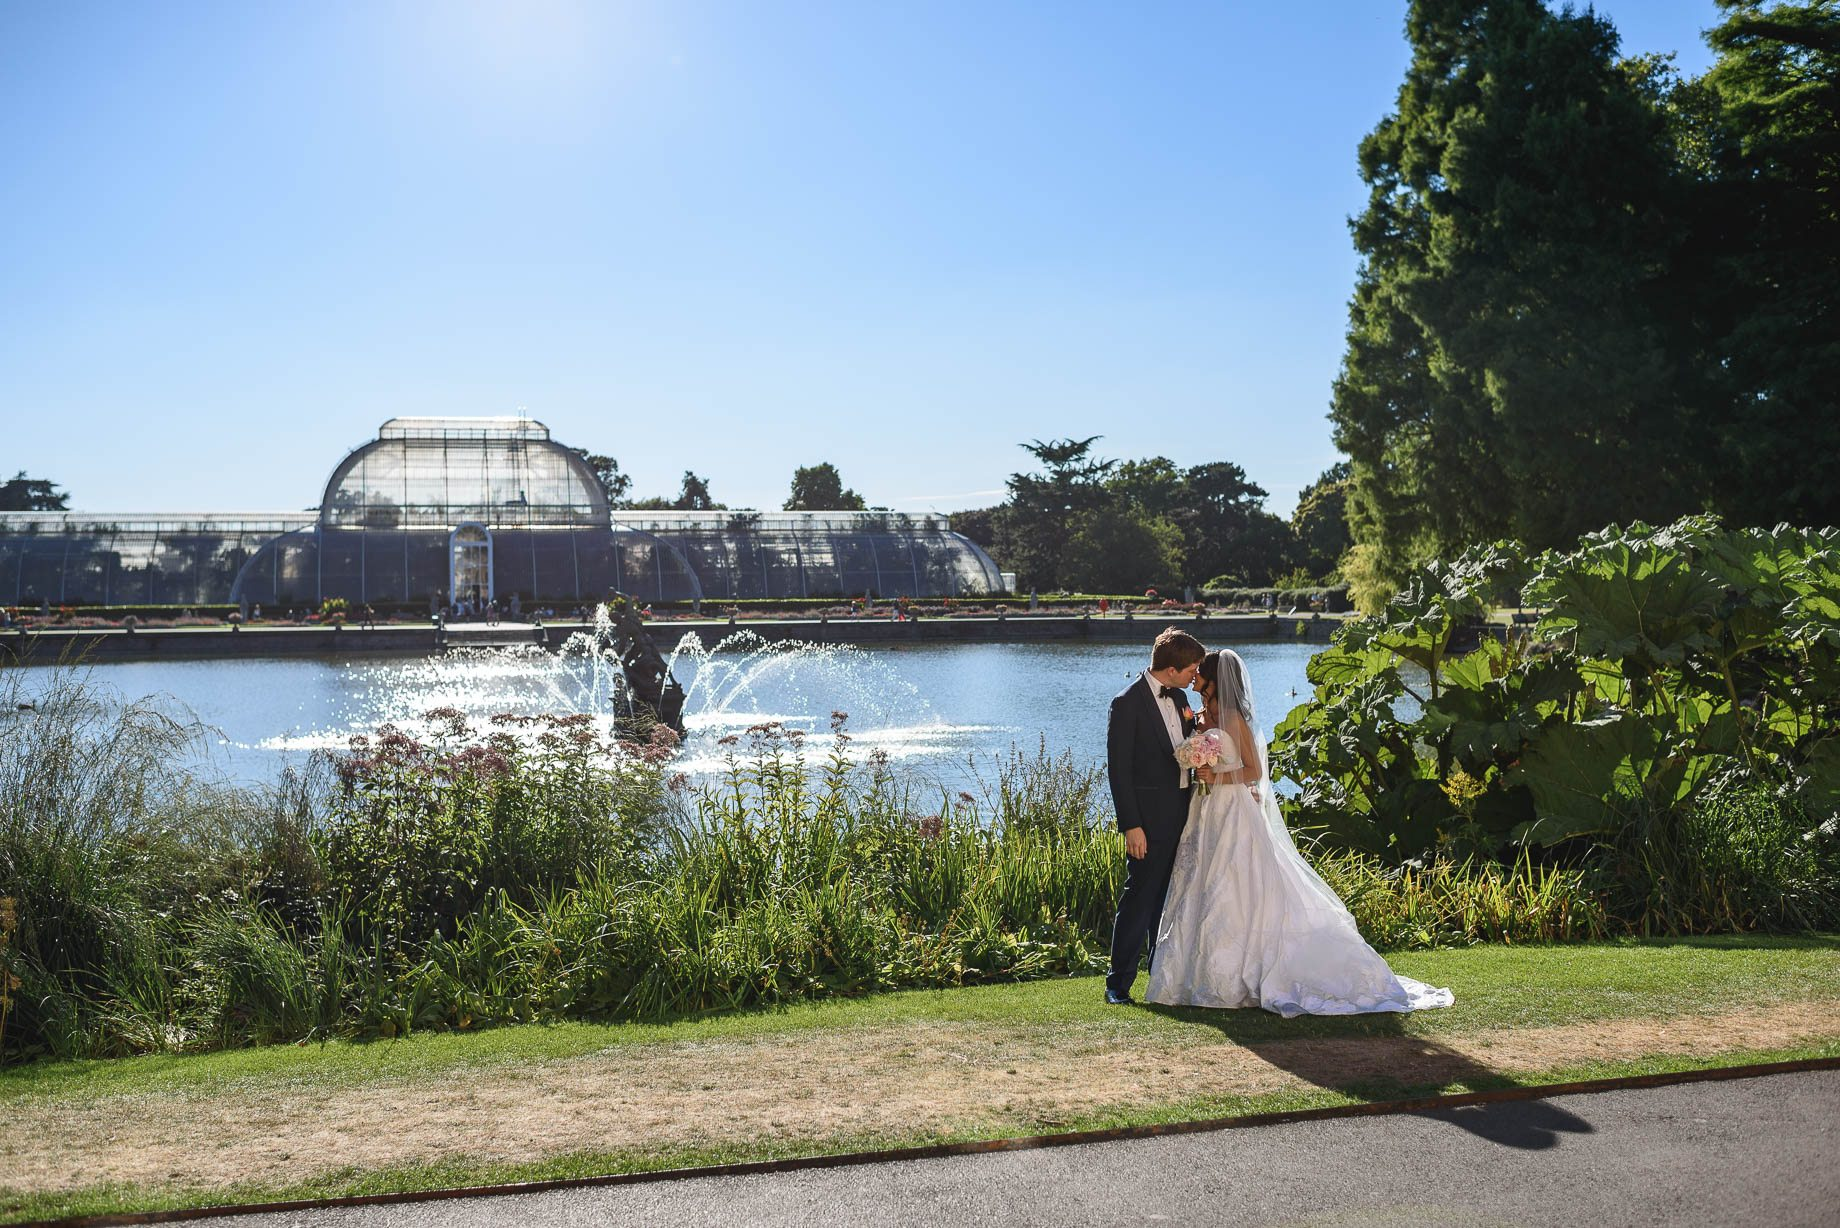 Kew Gardens wedding photography - Guy Collier Photography - Gloria and Frederik (81 of 173)